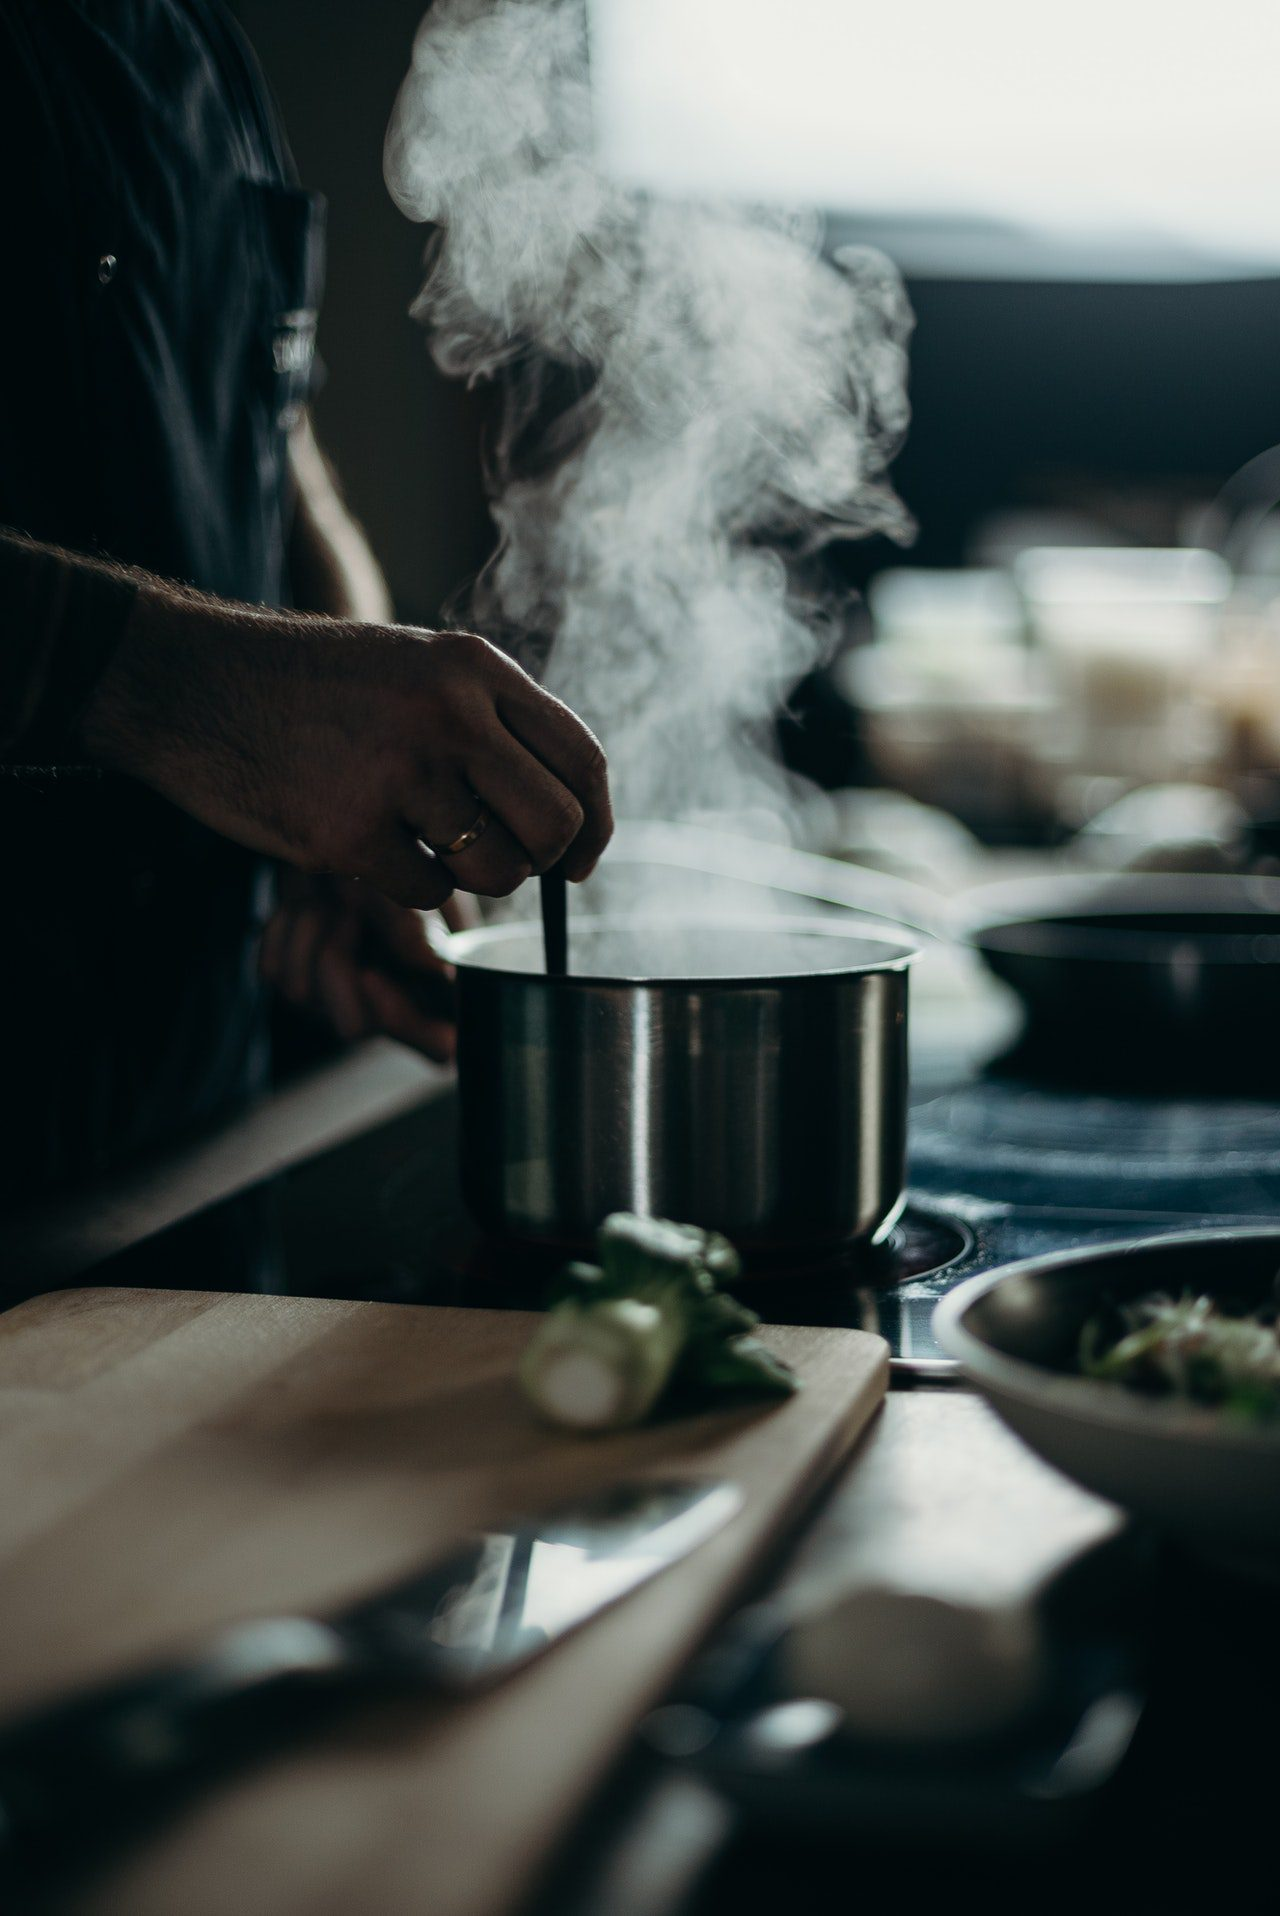 The World of Cooking